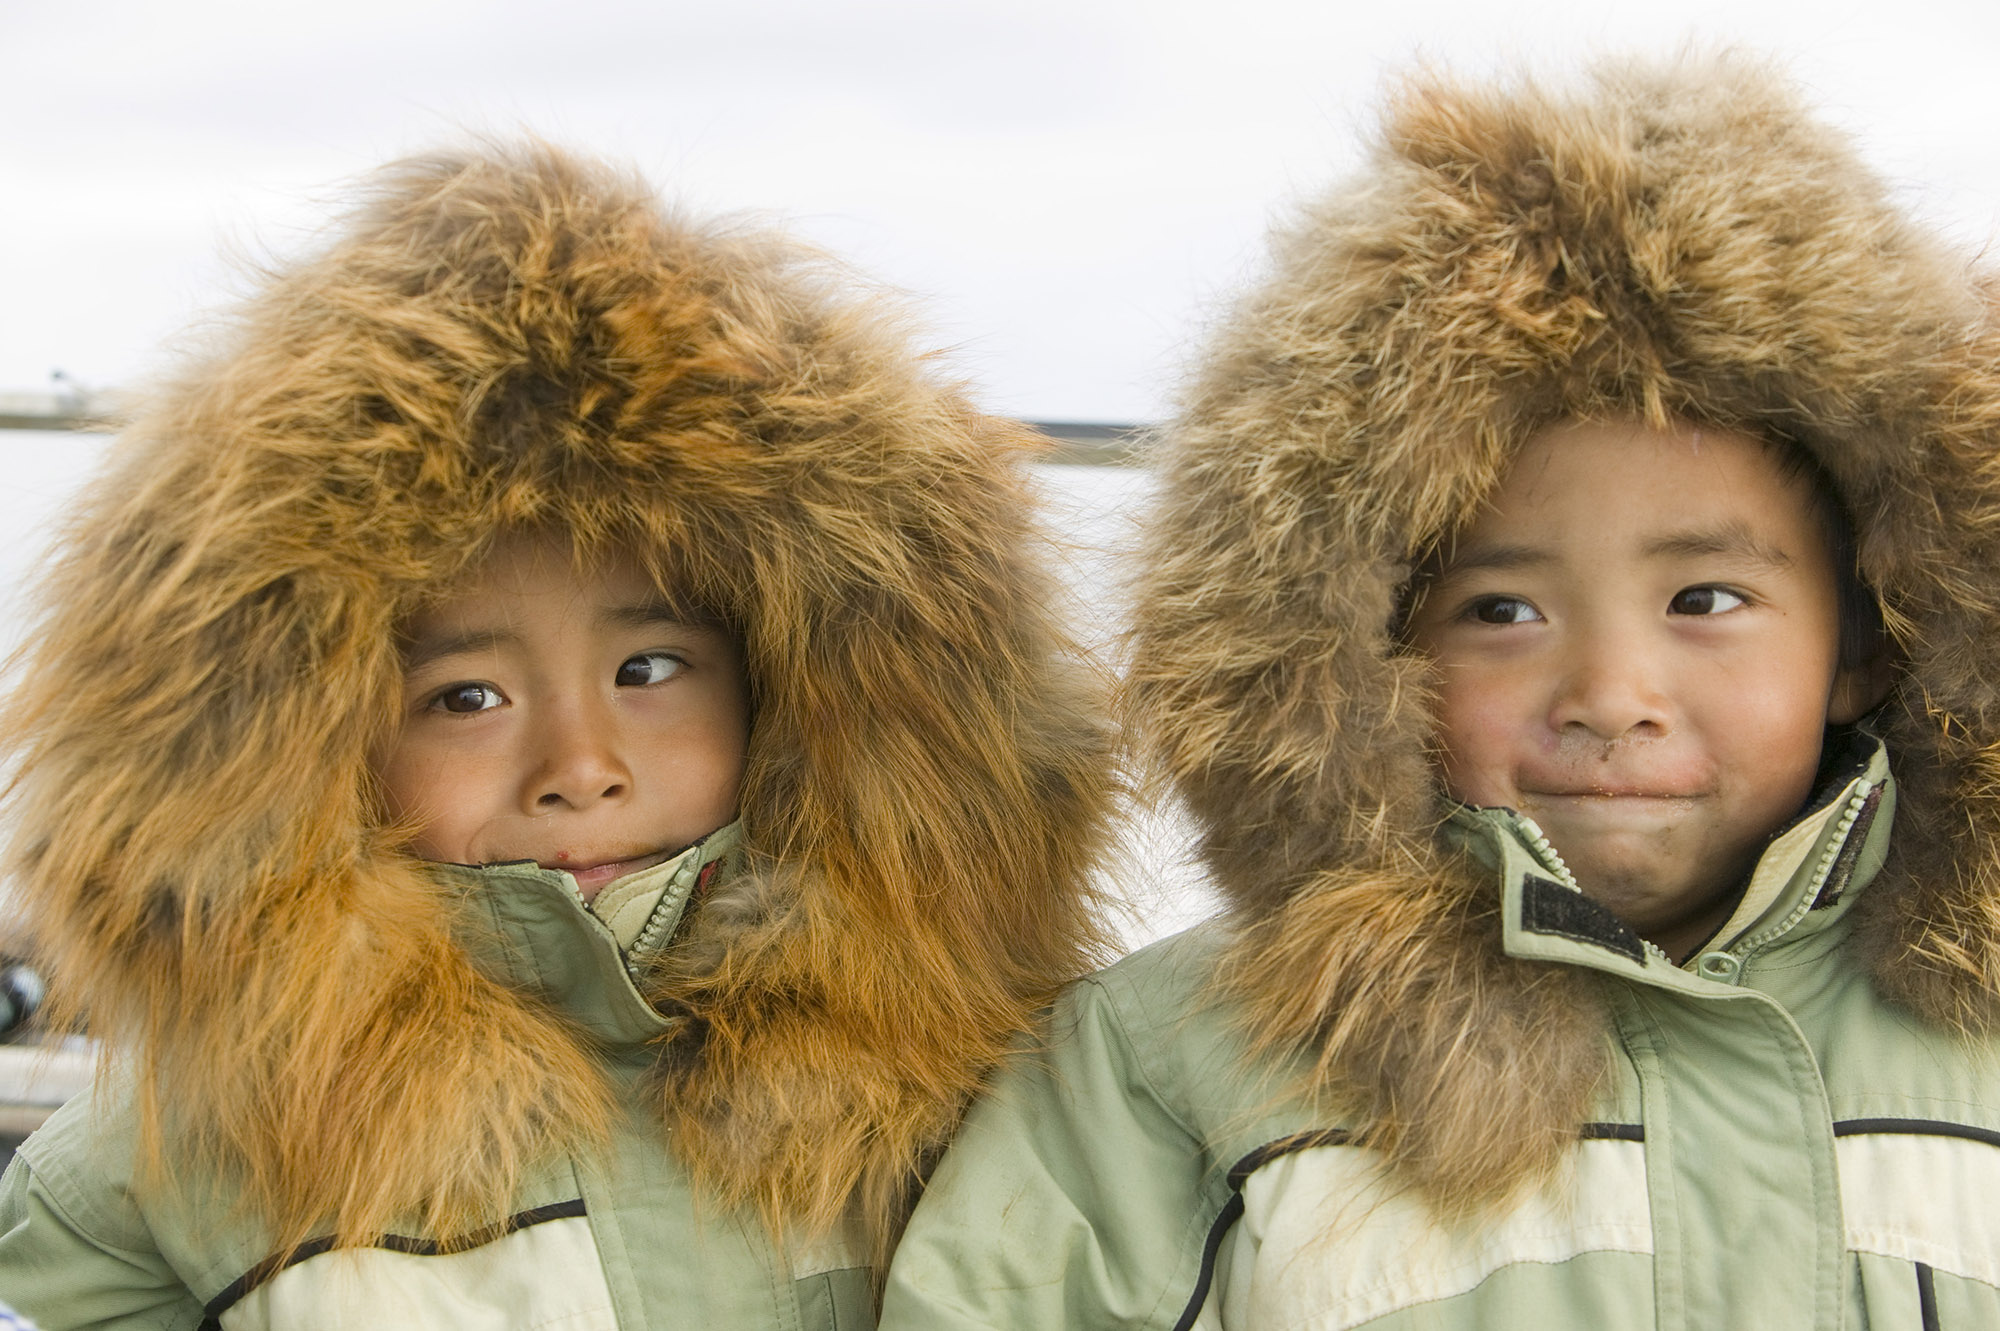 Twin Inuit boys around 7 years old in matching green coats with orange furry hoods